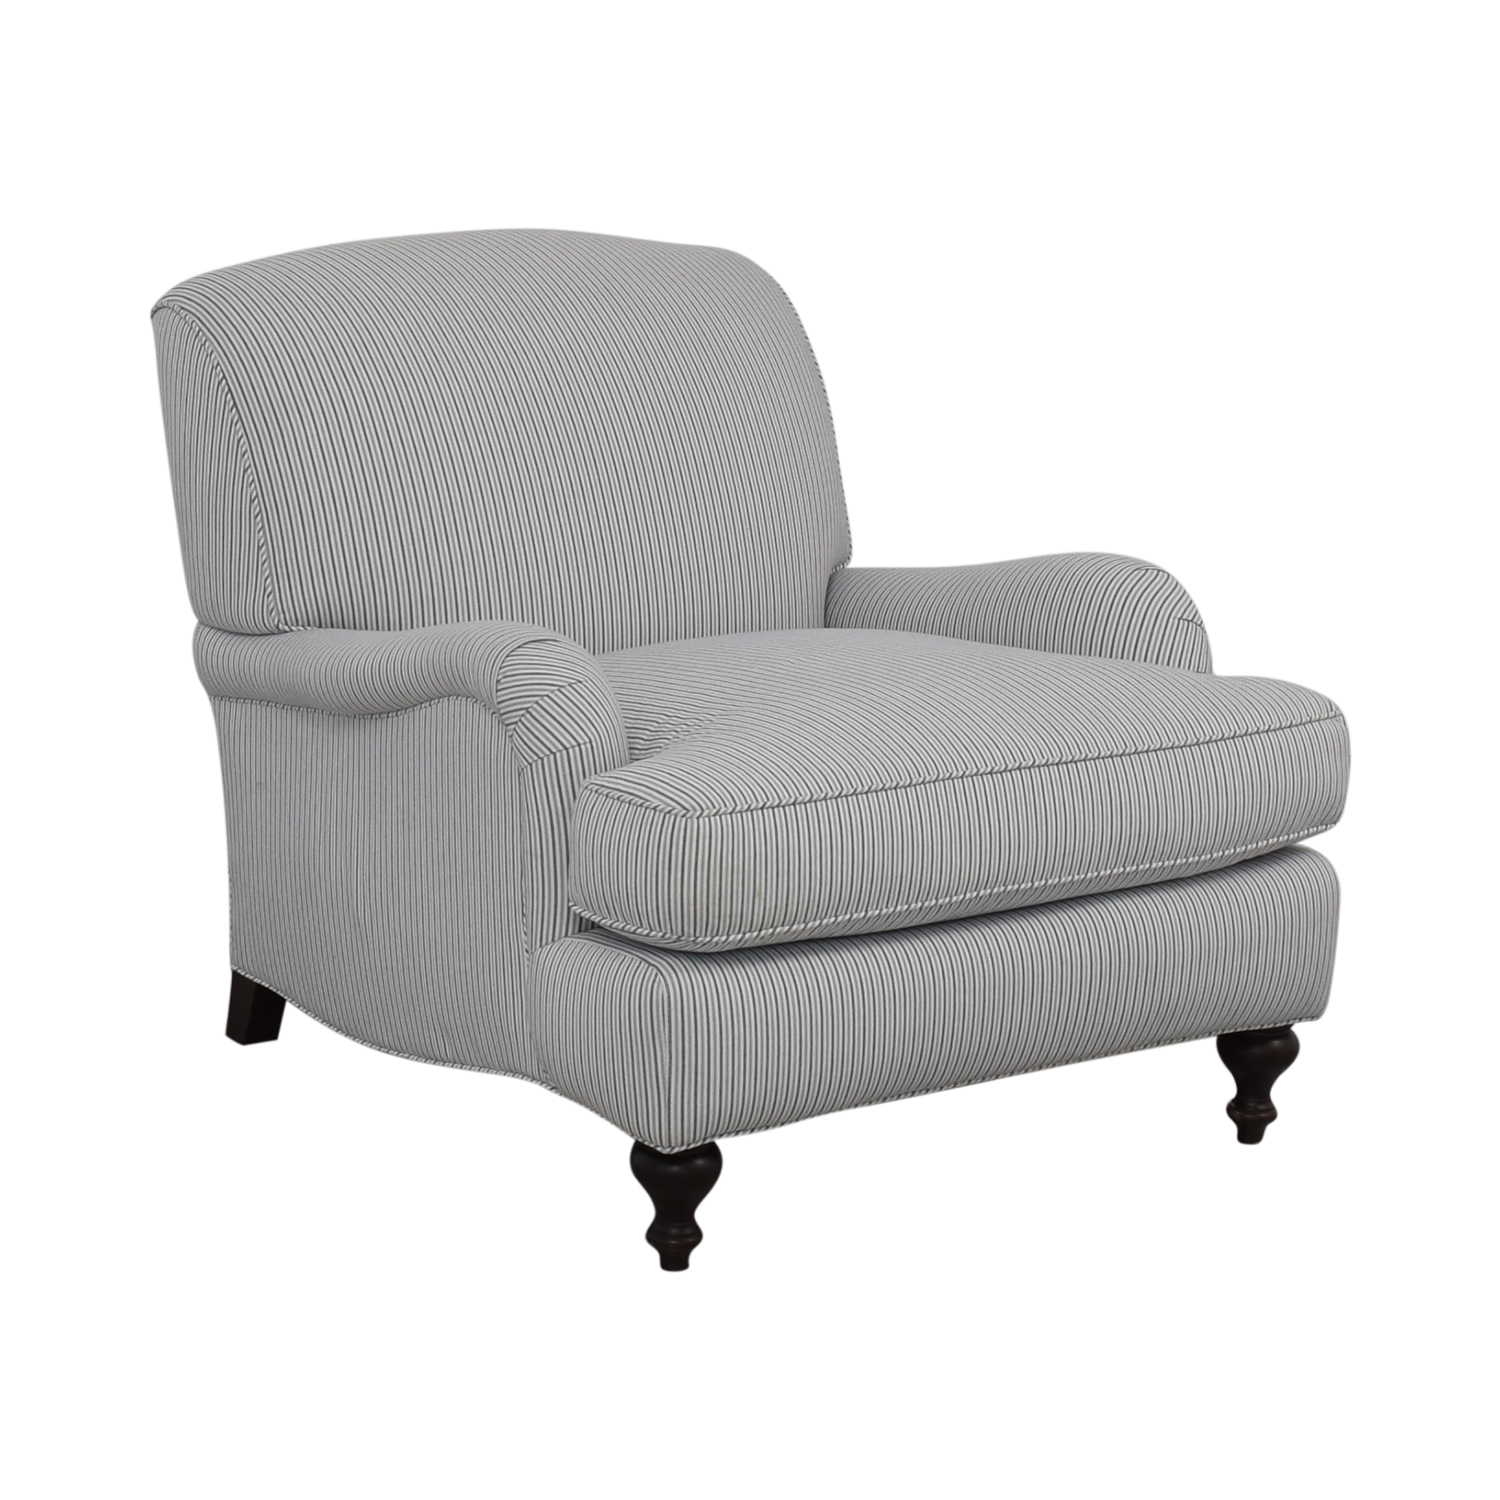 Serena & Lily Serena & Lily Miramar Upholstered Side Chair